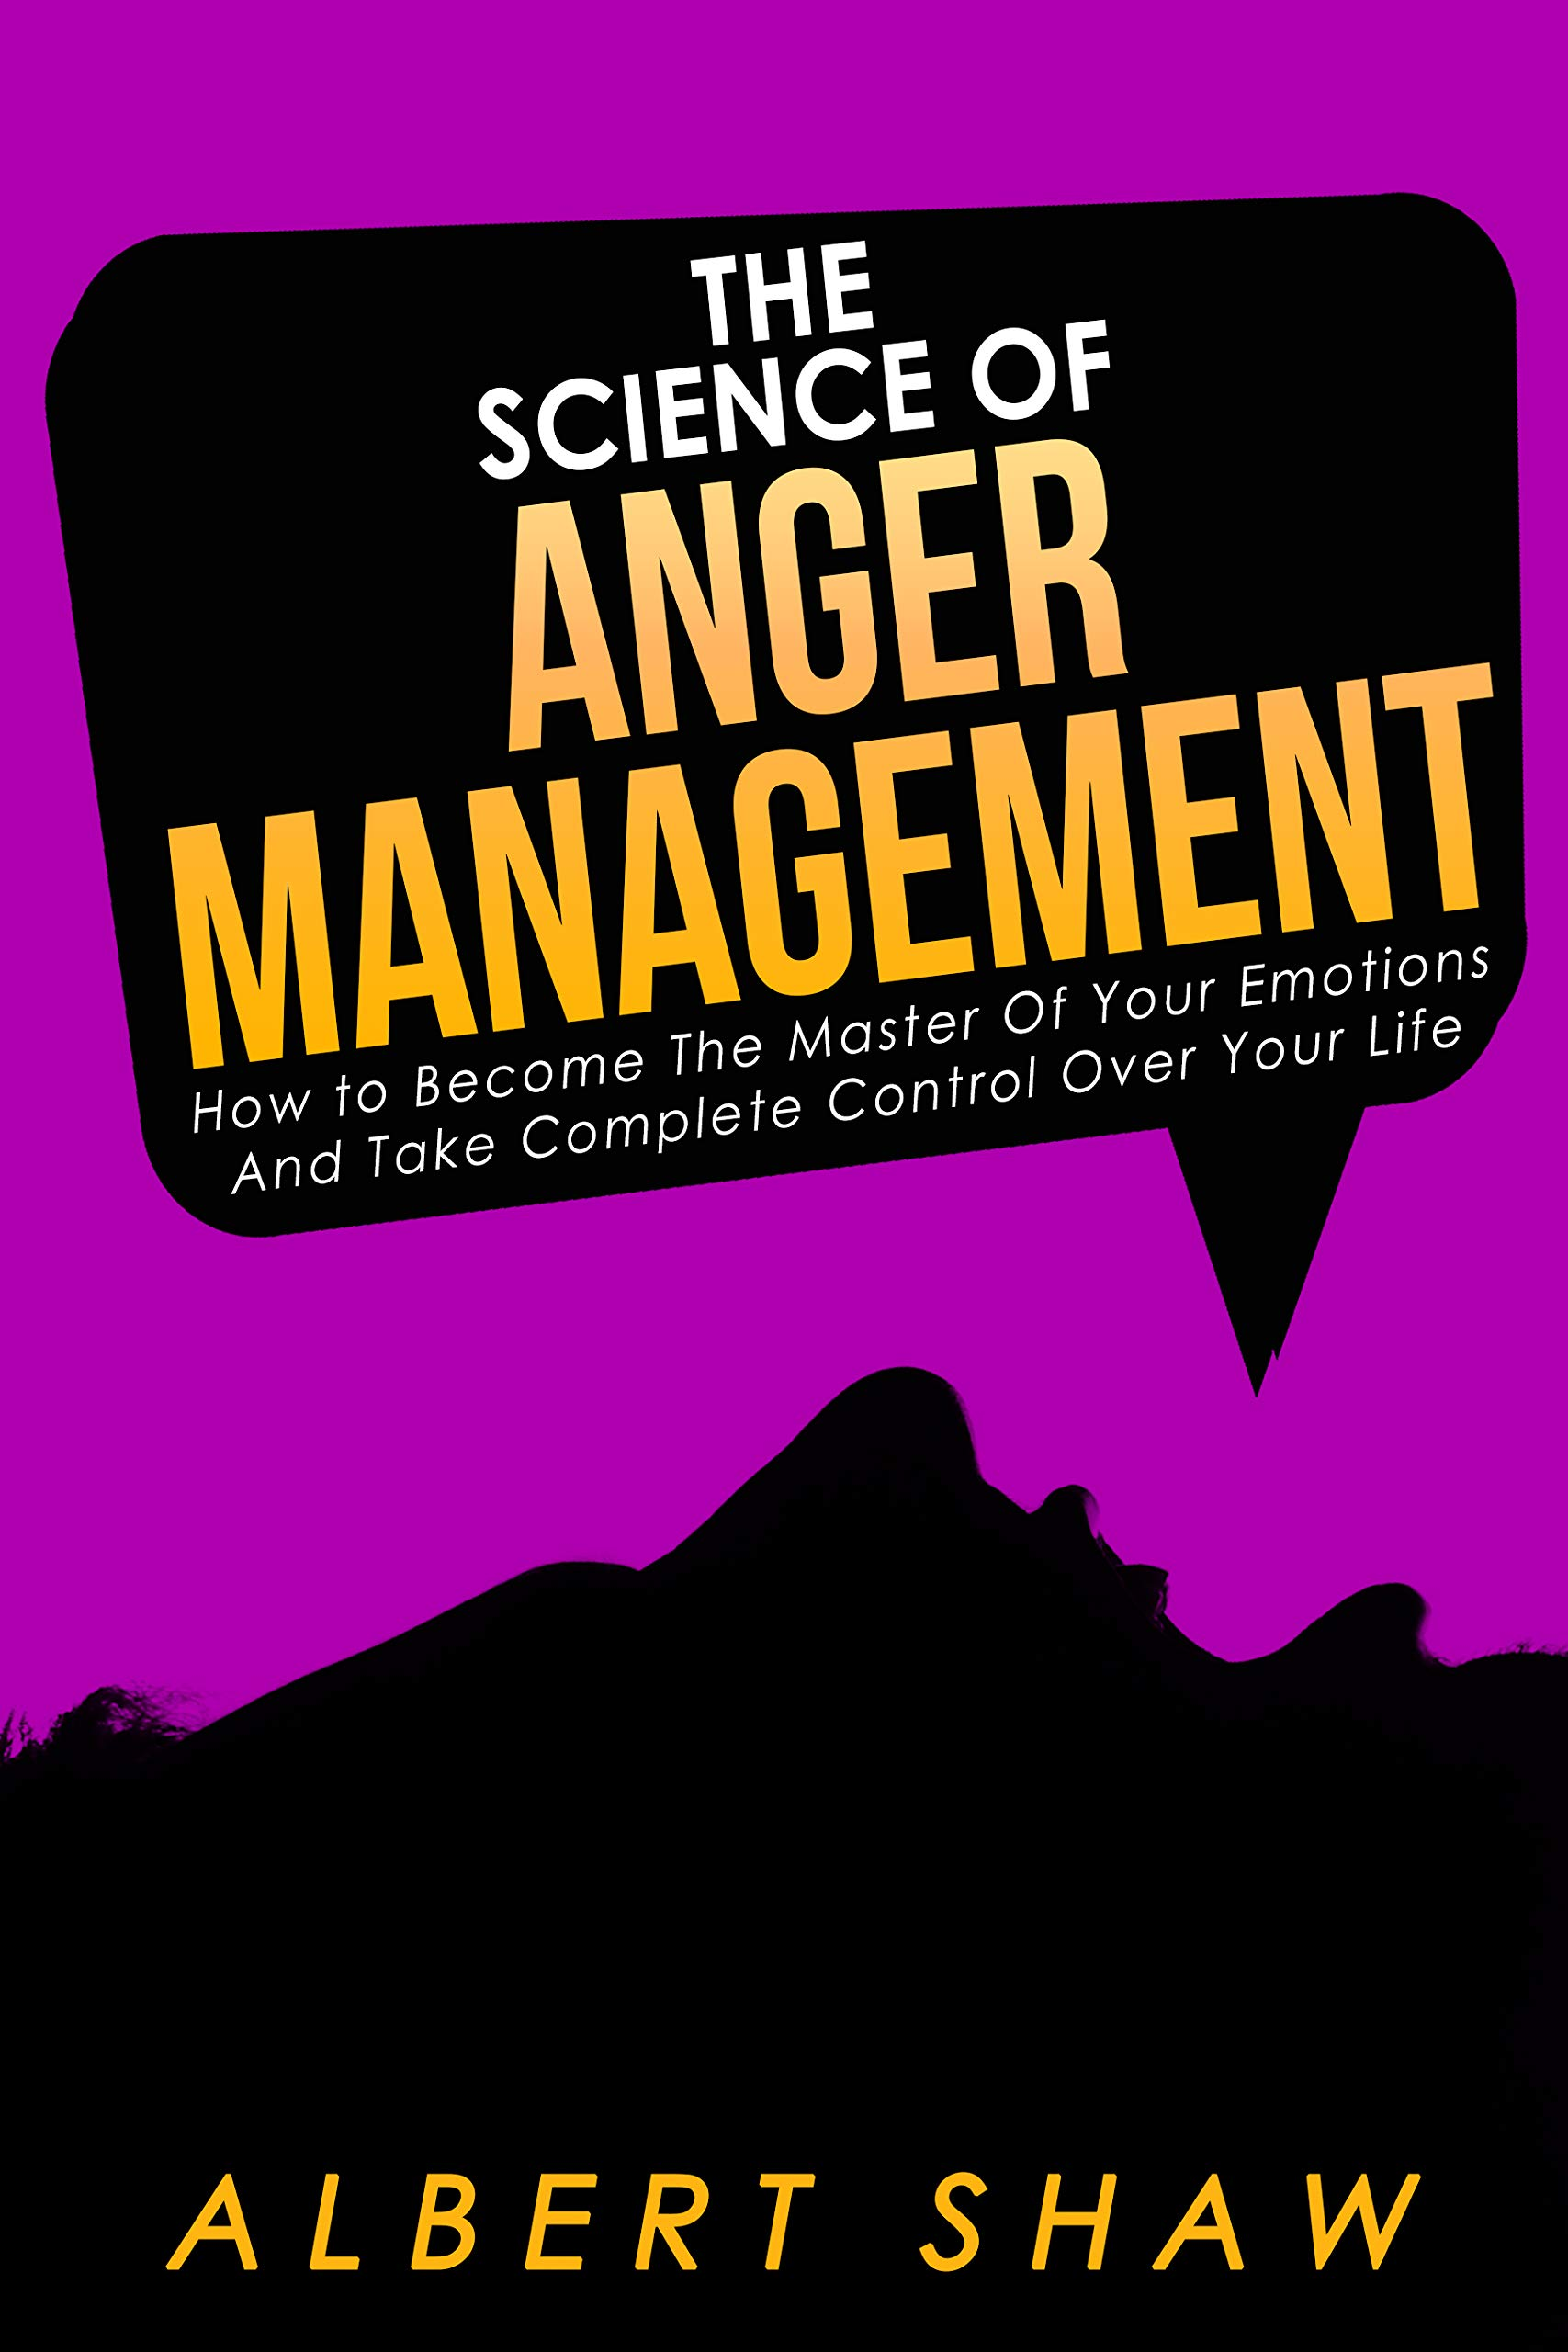 The Science Of Anger Management: How To Become The Master Of Your Emotions And Take Complete Control Over Your Life